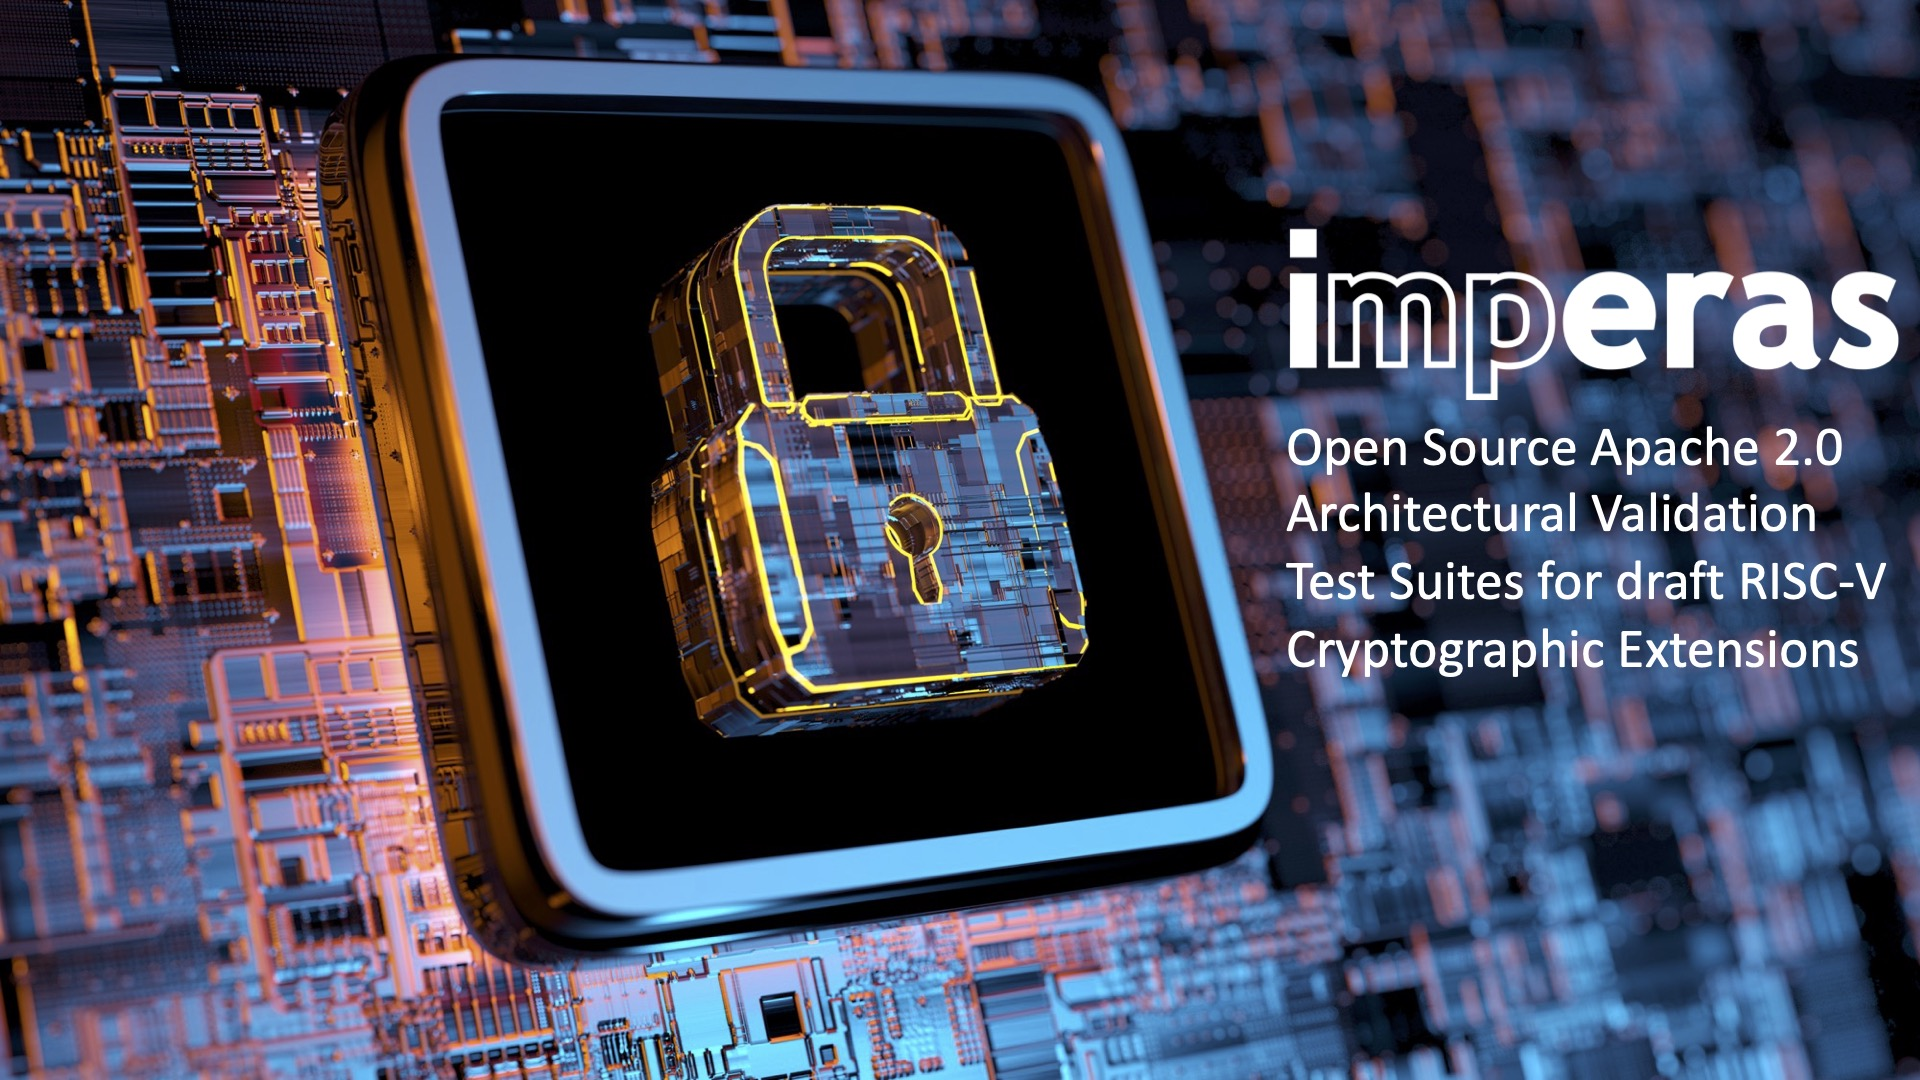 Imperas Open Source Apache 2.0 Architectural Validation Test Suites for draft RISC-V Cryptographic Extensions